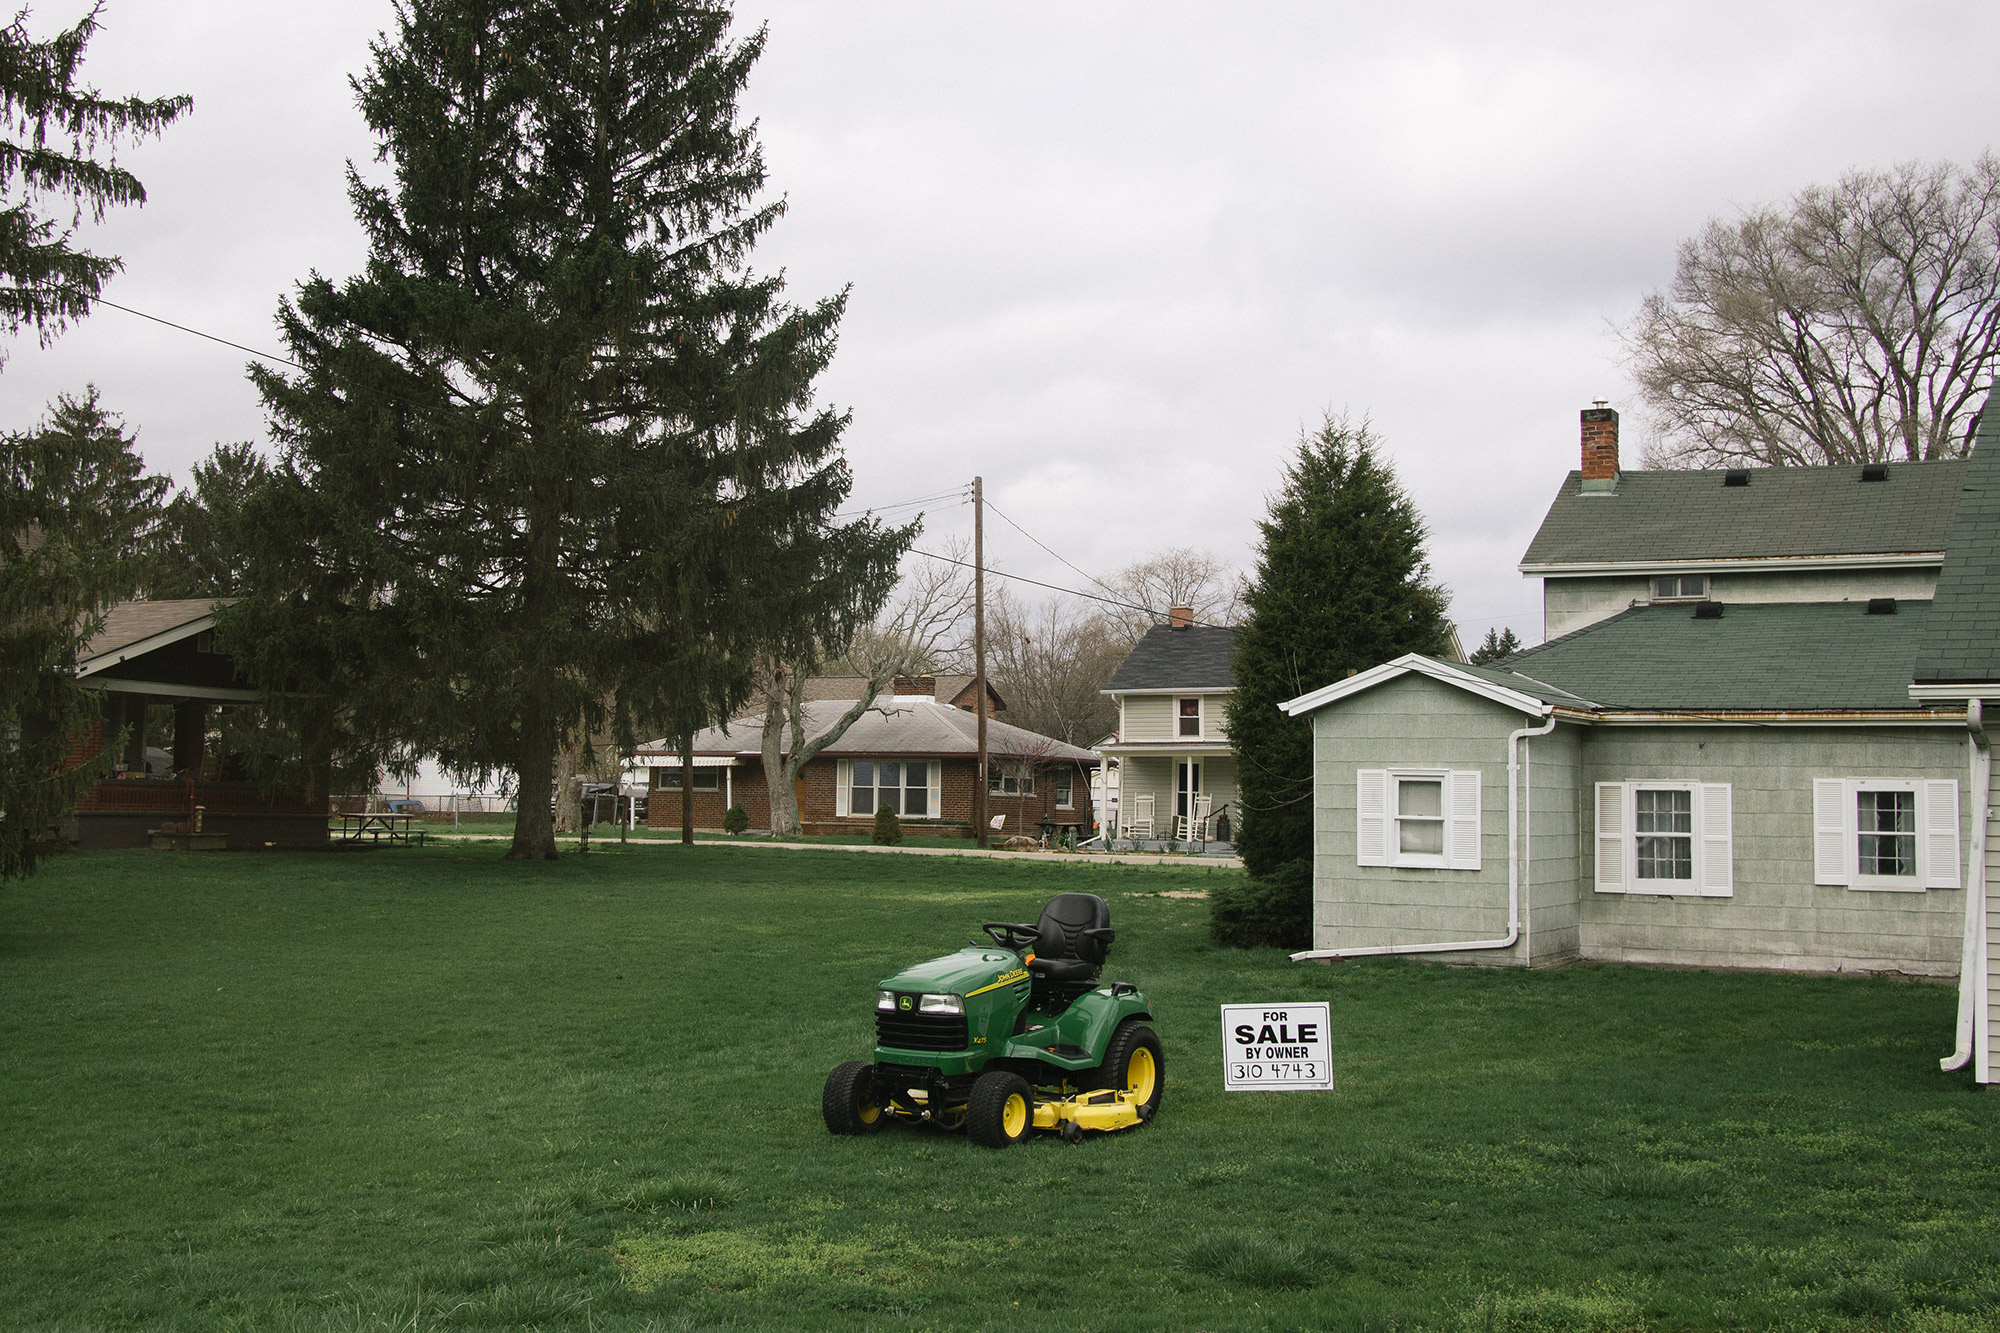 A lawnmower in the middle of grass